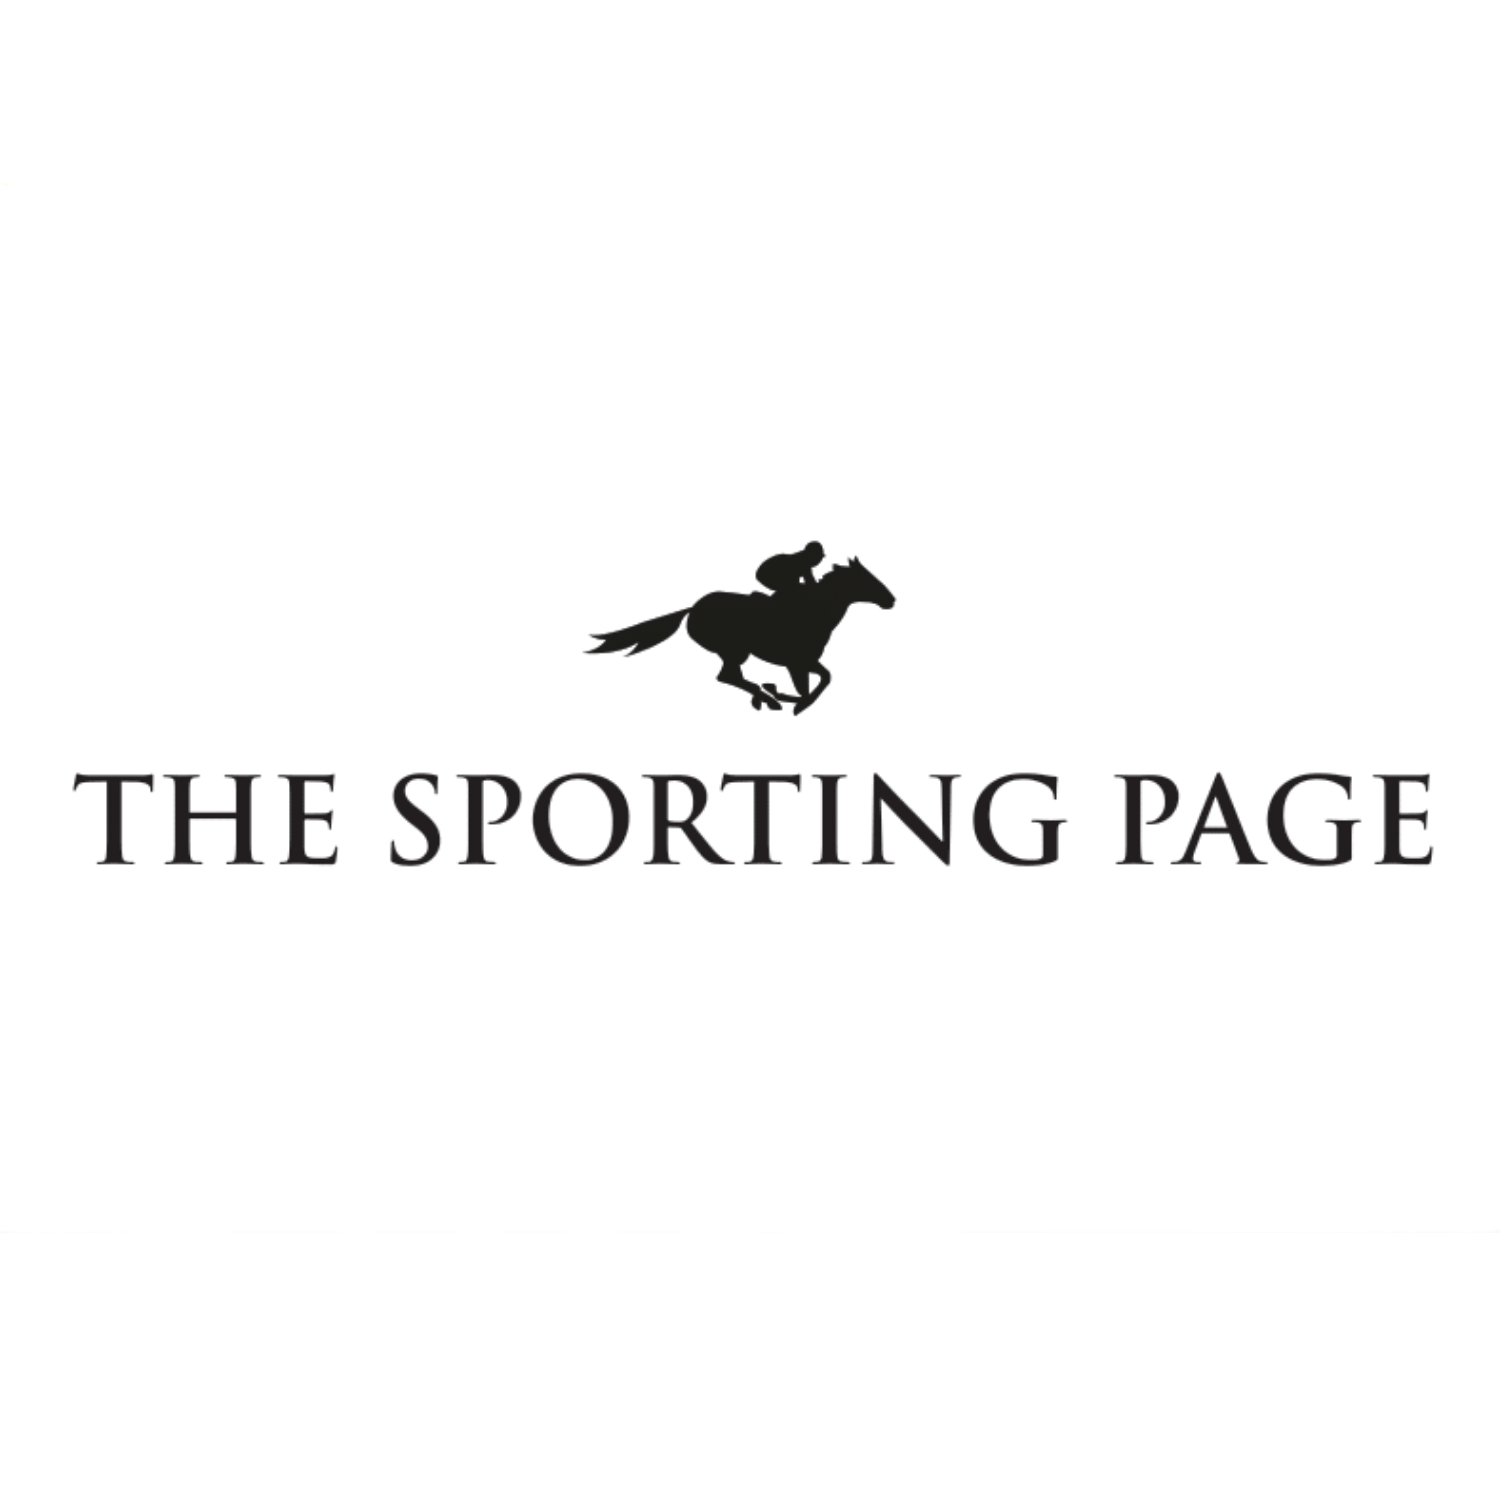 The Sporting Page